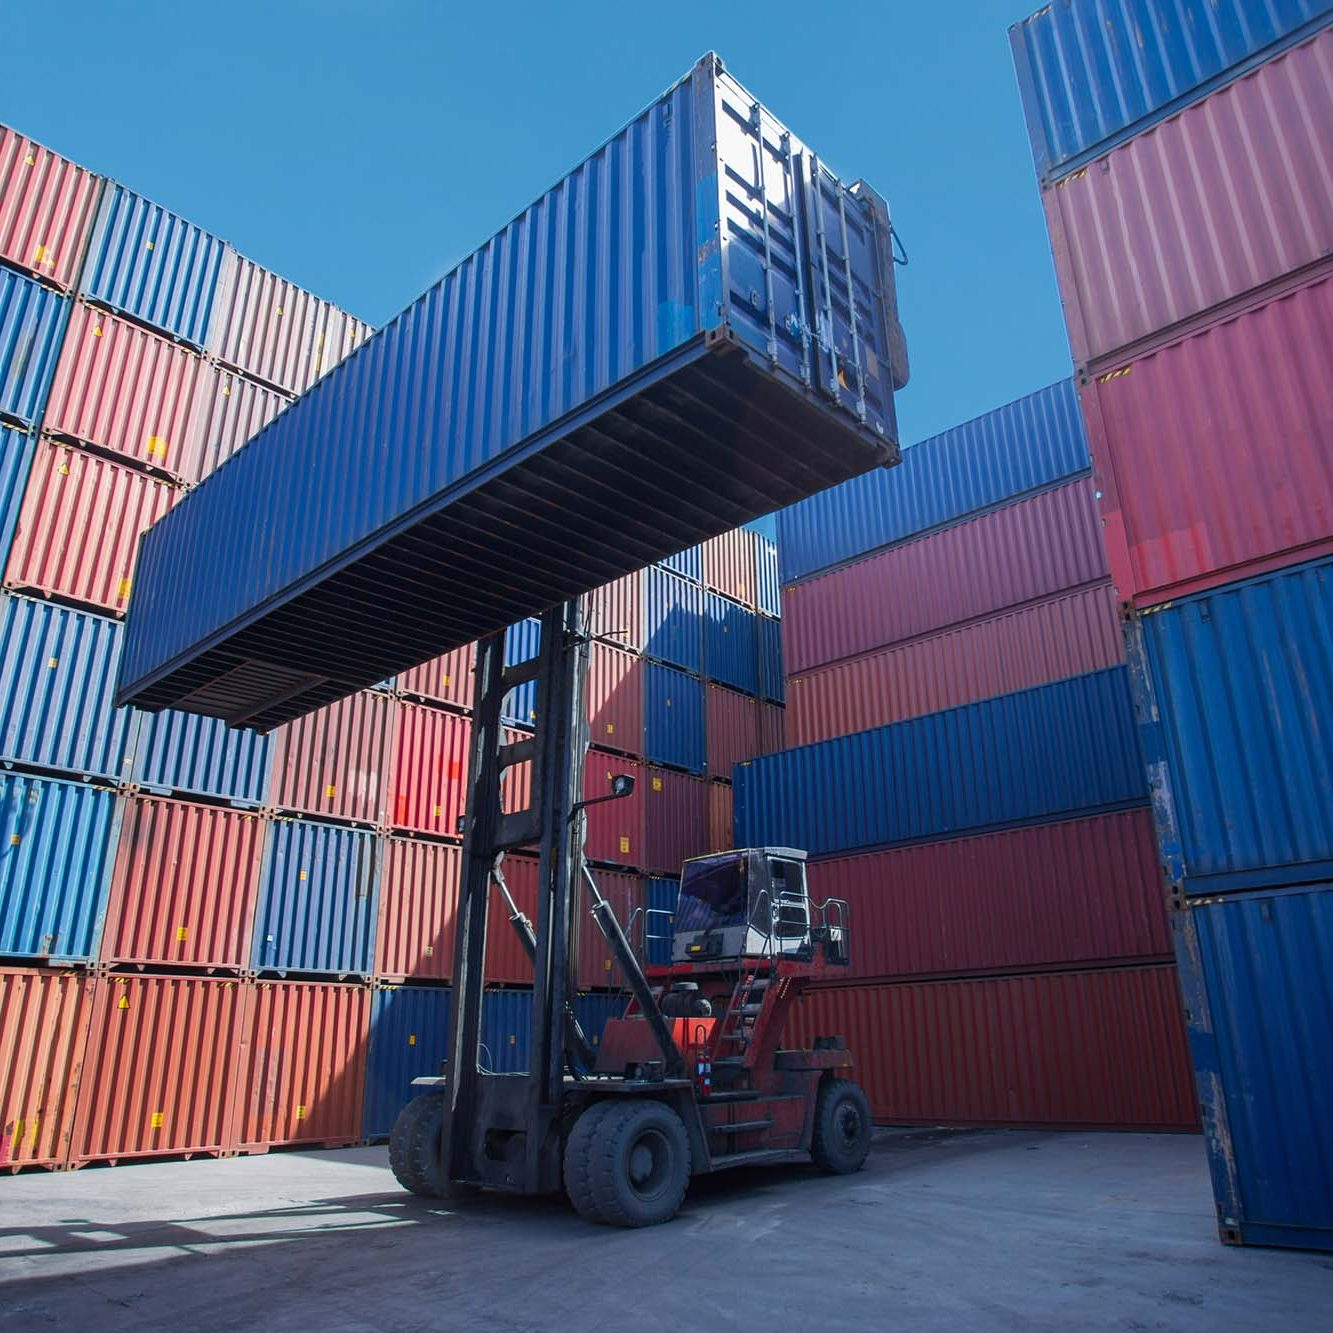 Forklift truck lifting cargo container in shipping yard or dock